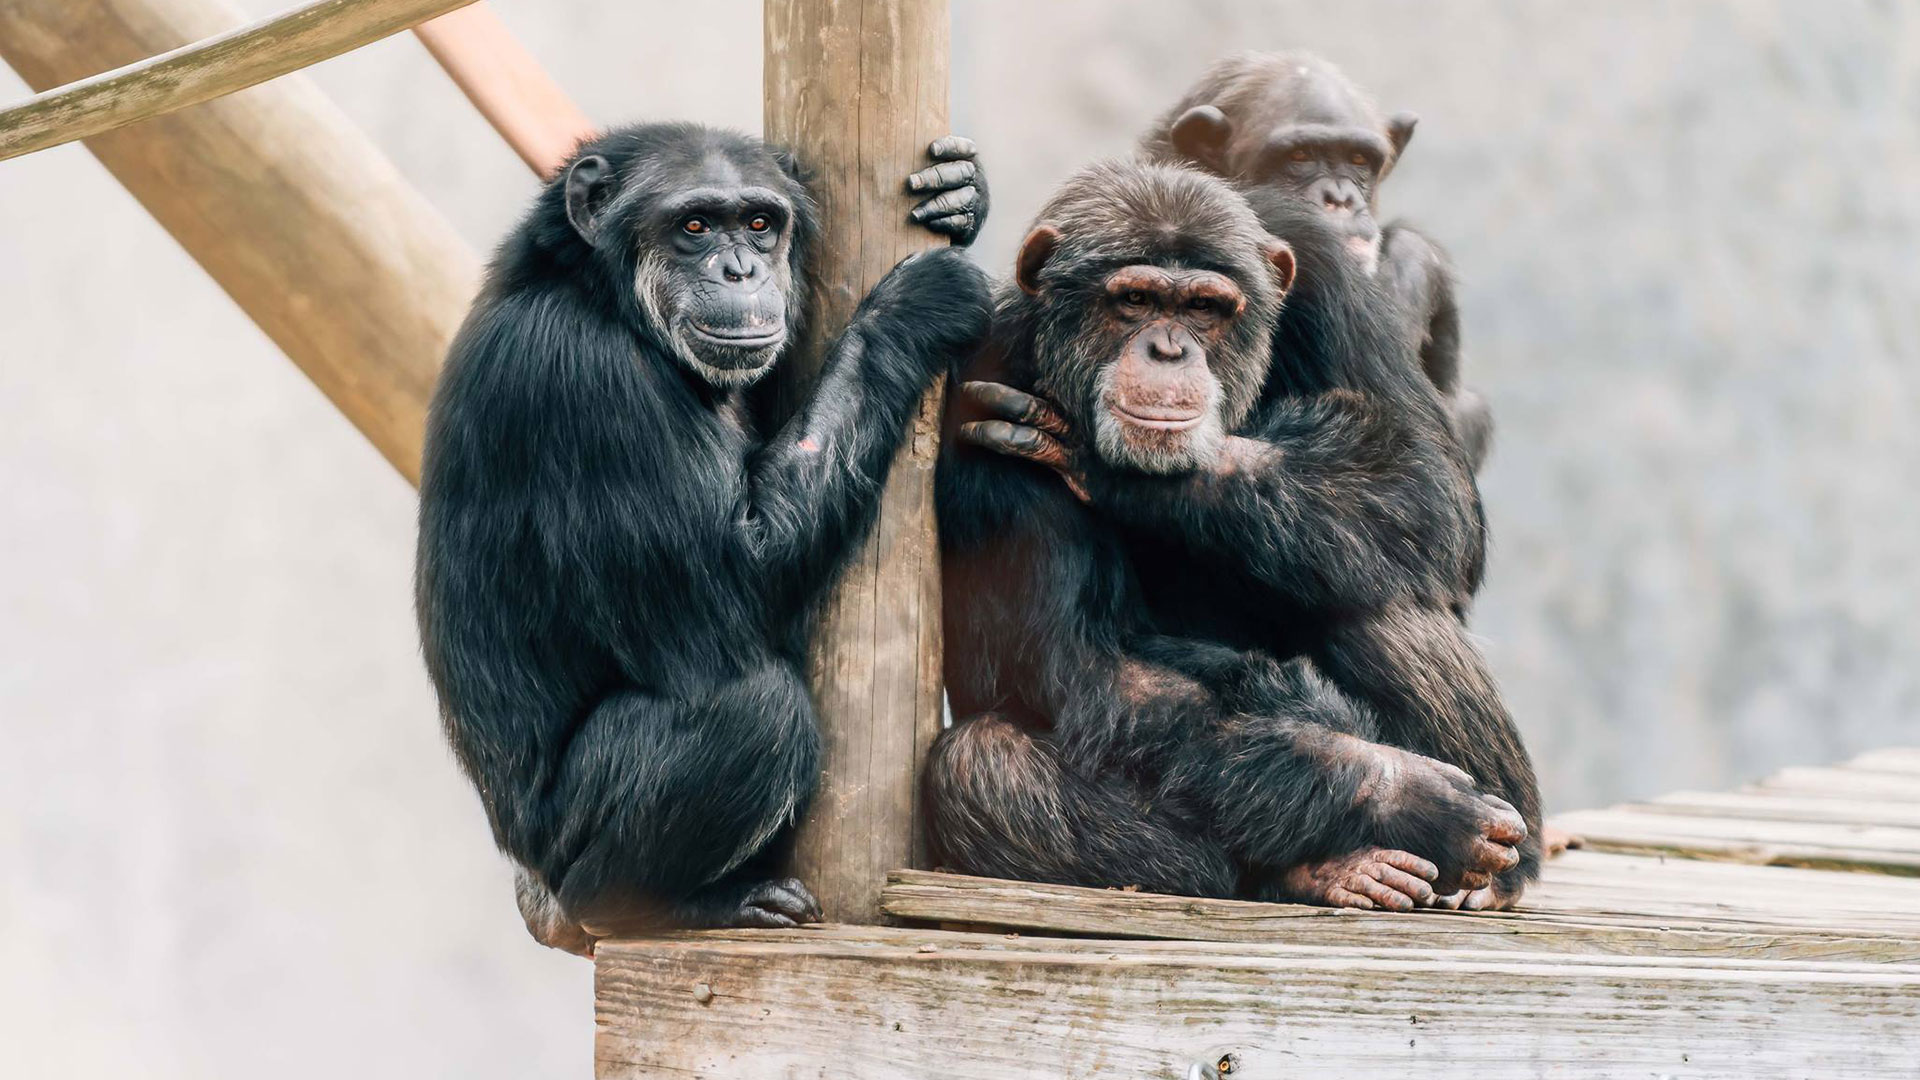 Louisiana Is Home to the World's Largest Chimpanzee Sanctuary